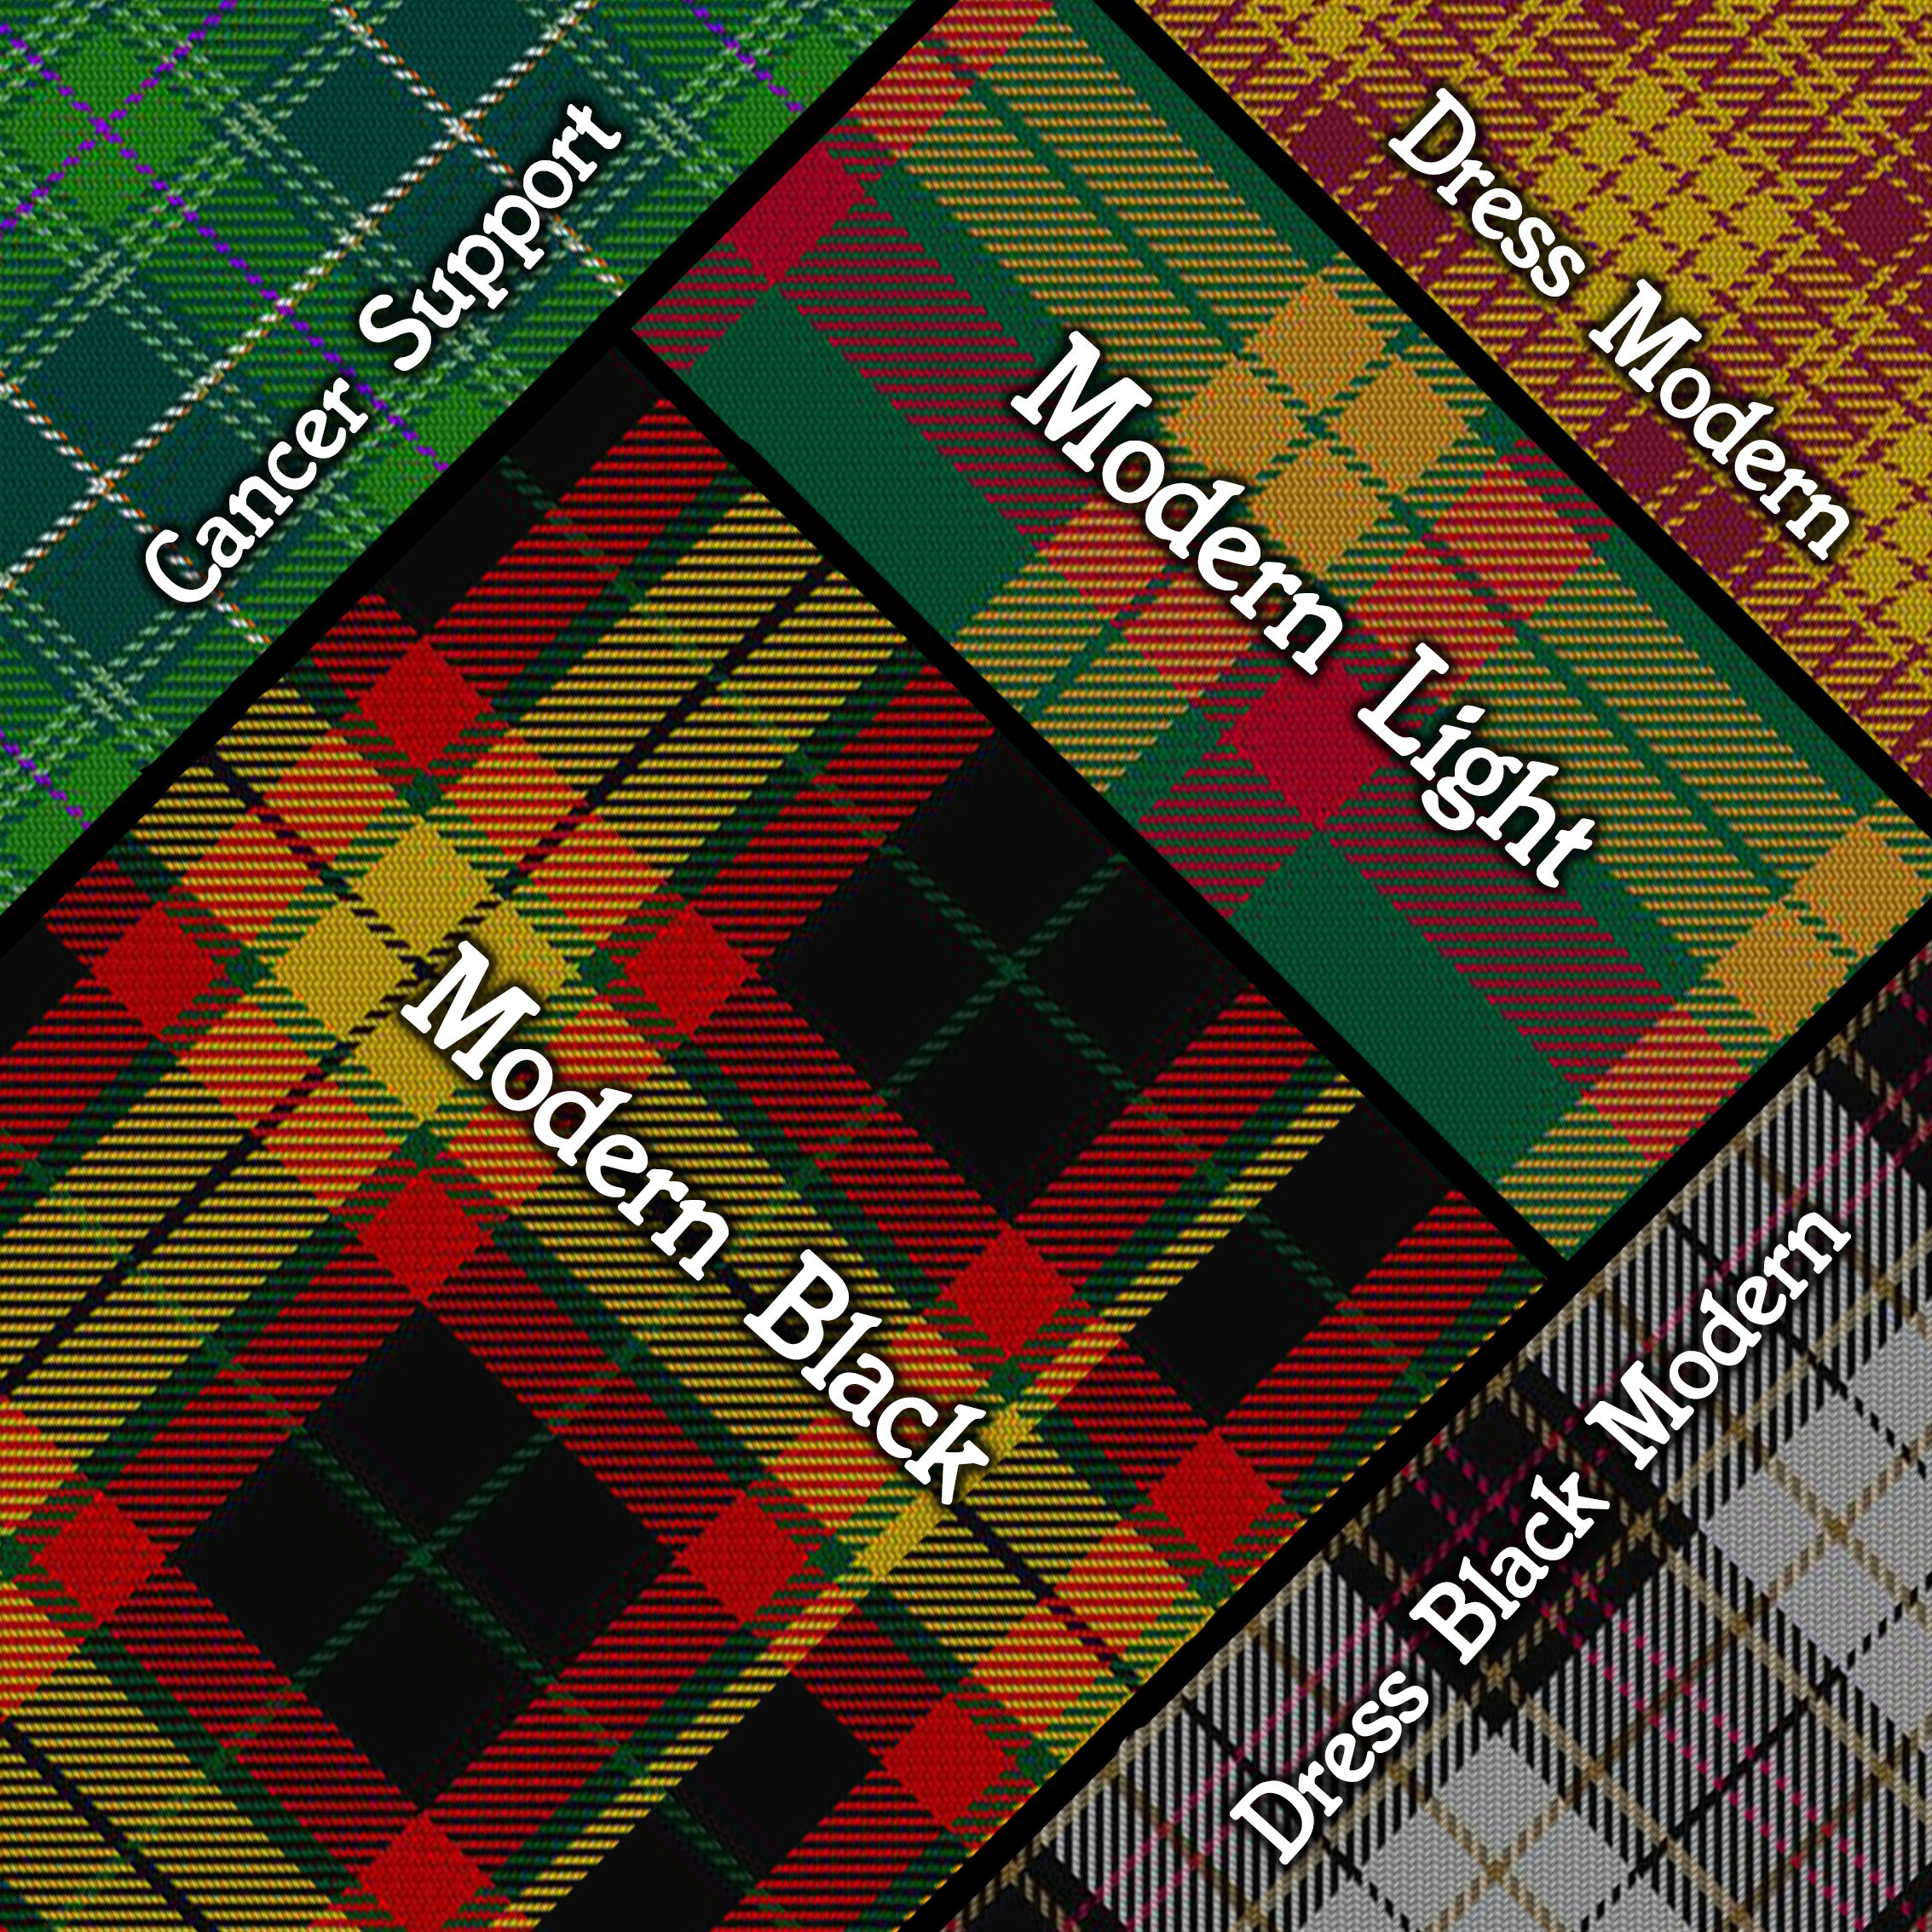 MacMillan Shield Plaque with Scottish Clan Coat of Arms Badge on Clan Plaid  Tartan Background Wall Art